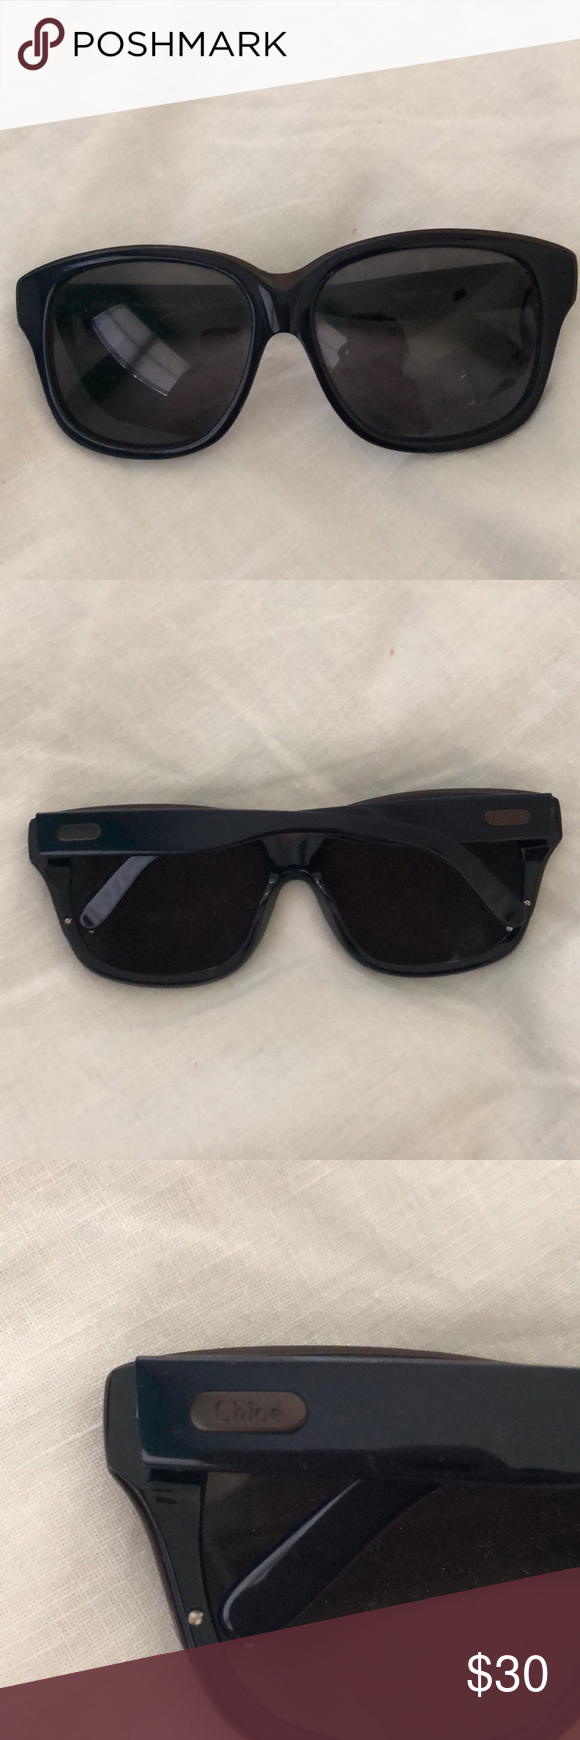 701c93a33f9f Chloe sunglasses Cute older style Chloe sunglasses big frames Celine Accessories  Sunglasses